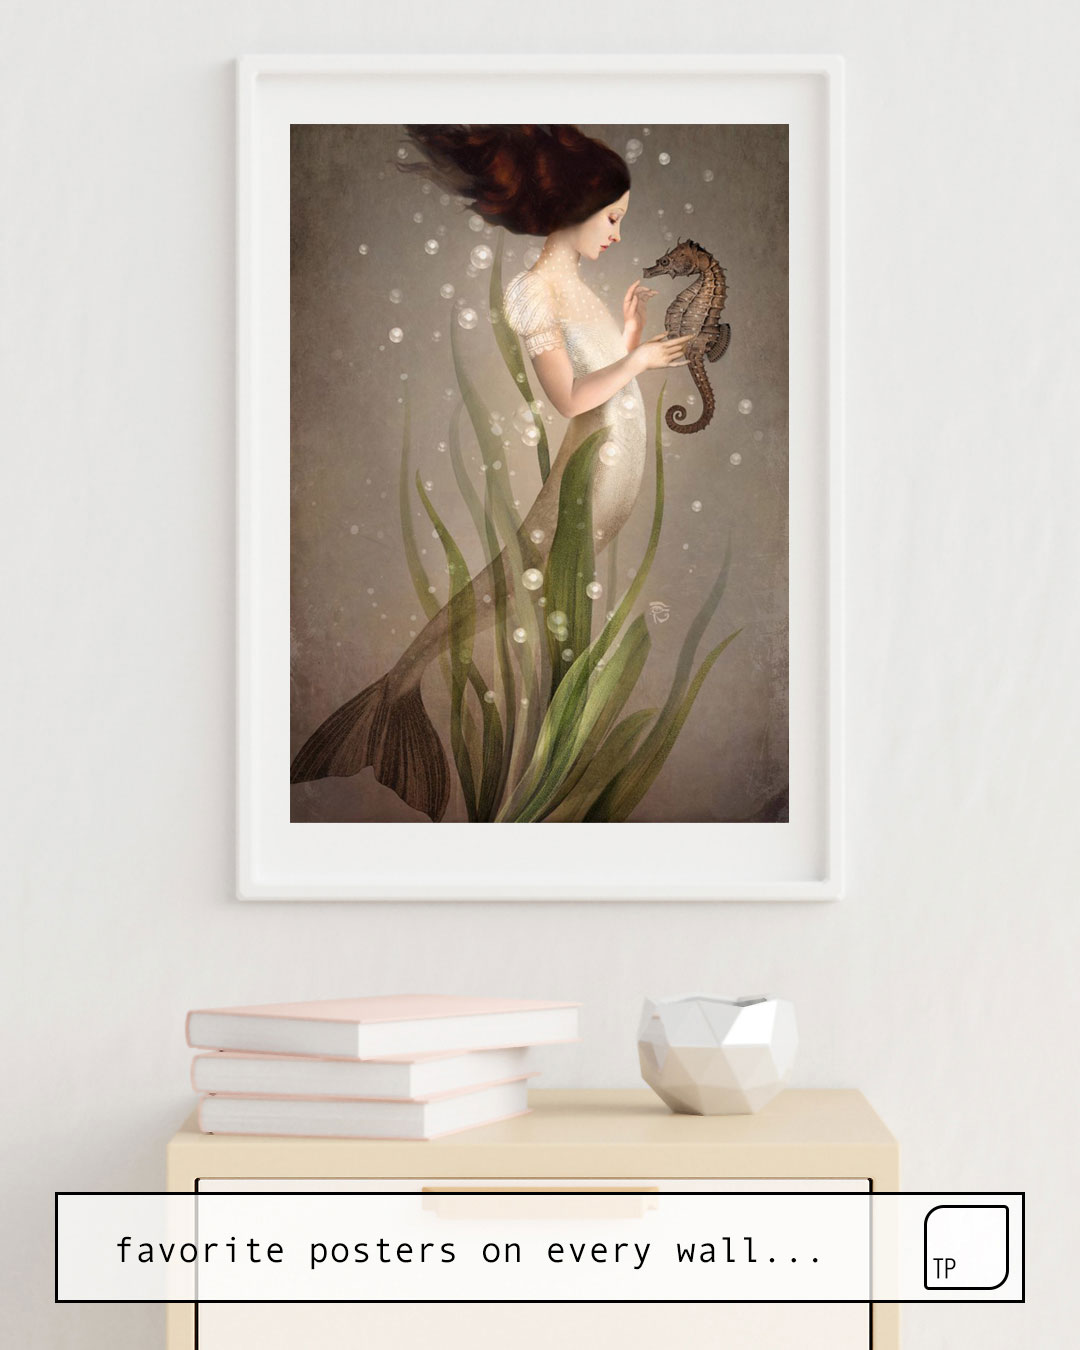 The photo shows an example of furnishing with the motif IN THE SEA by Christian Schloe as mural